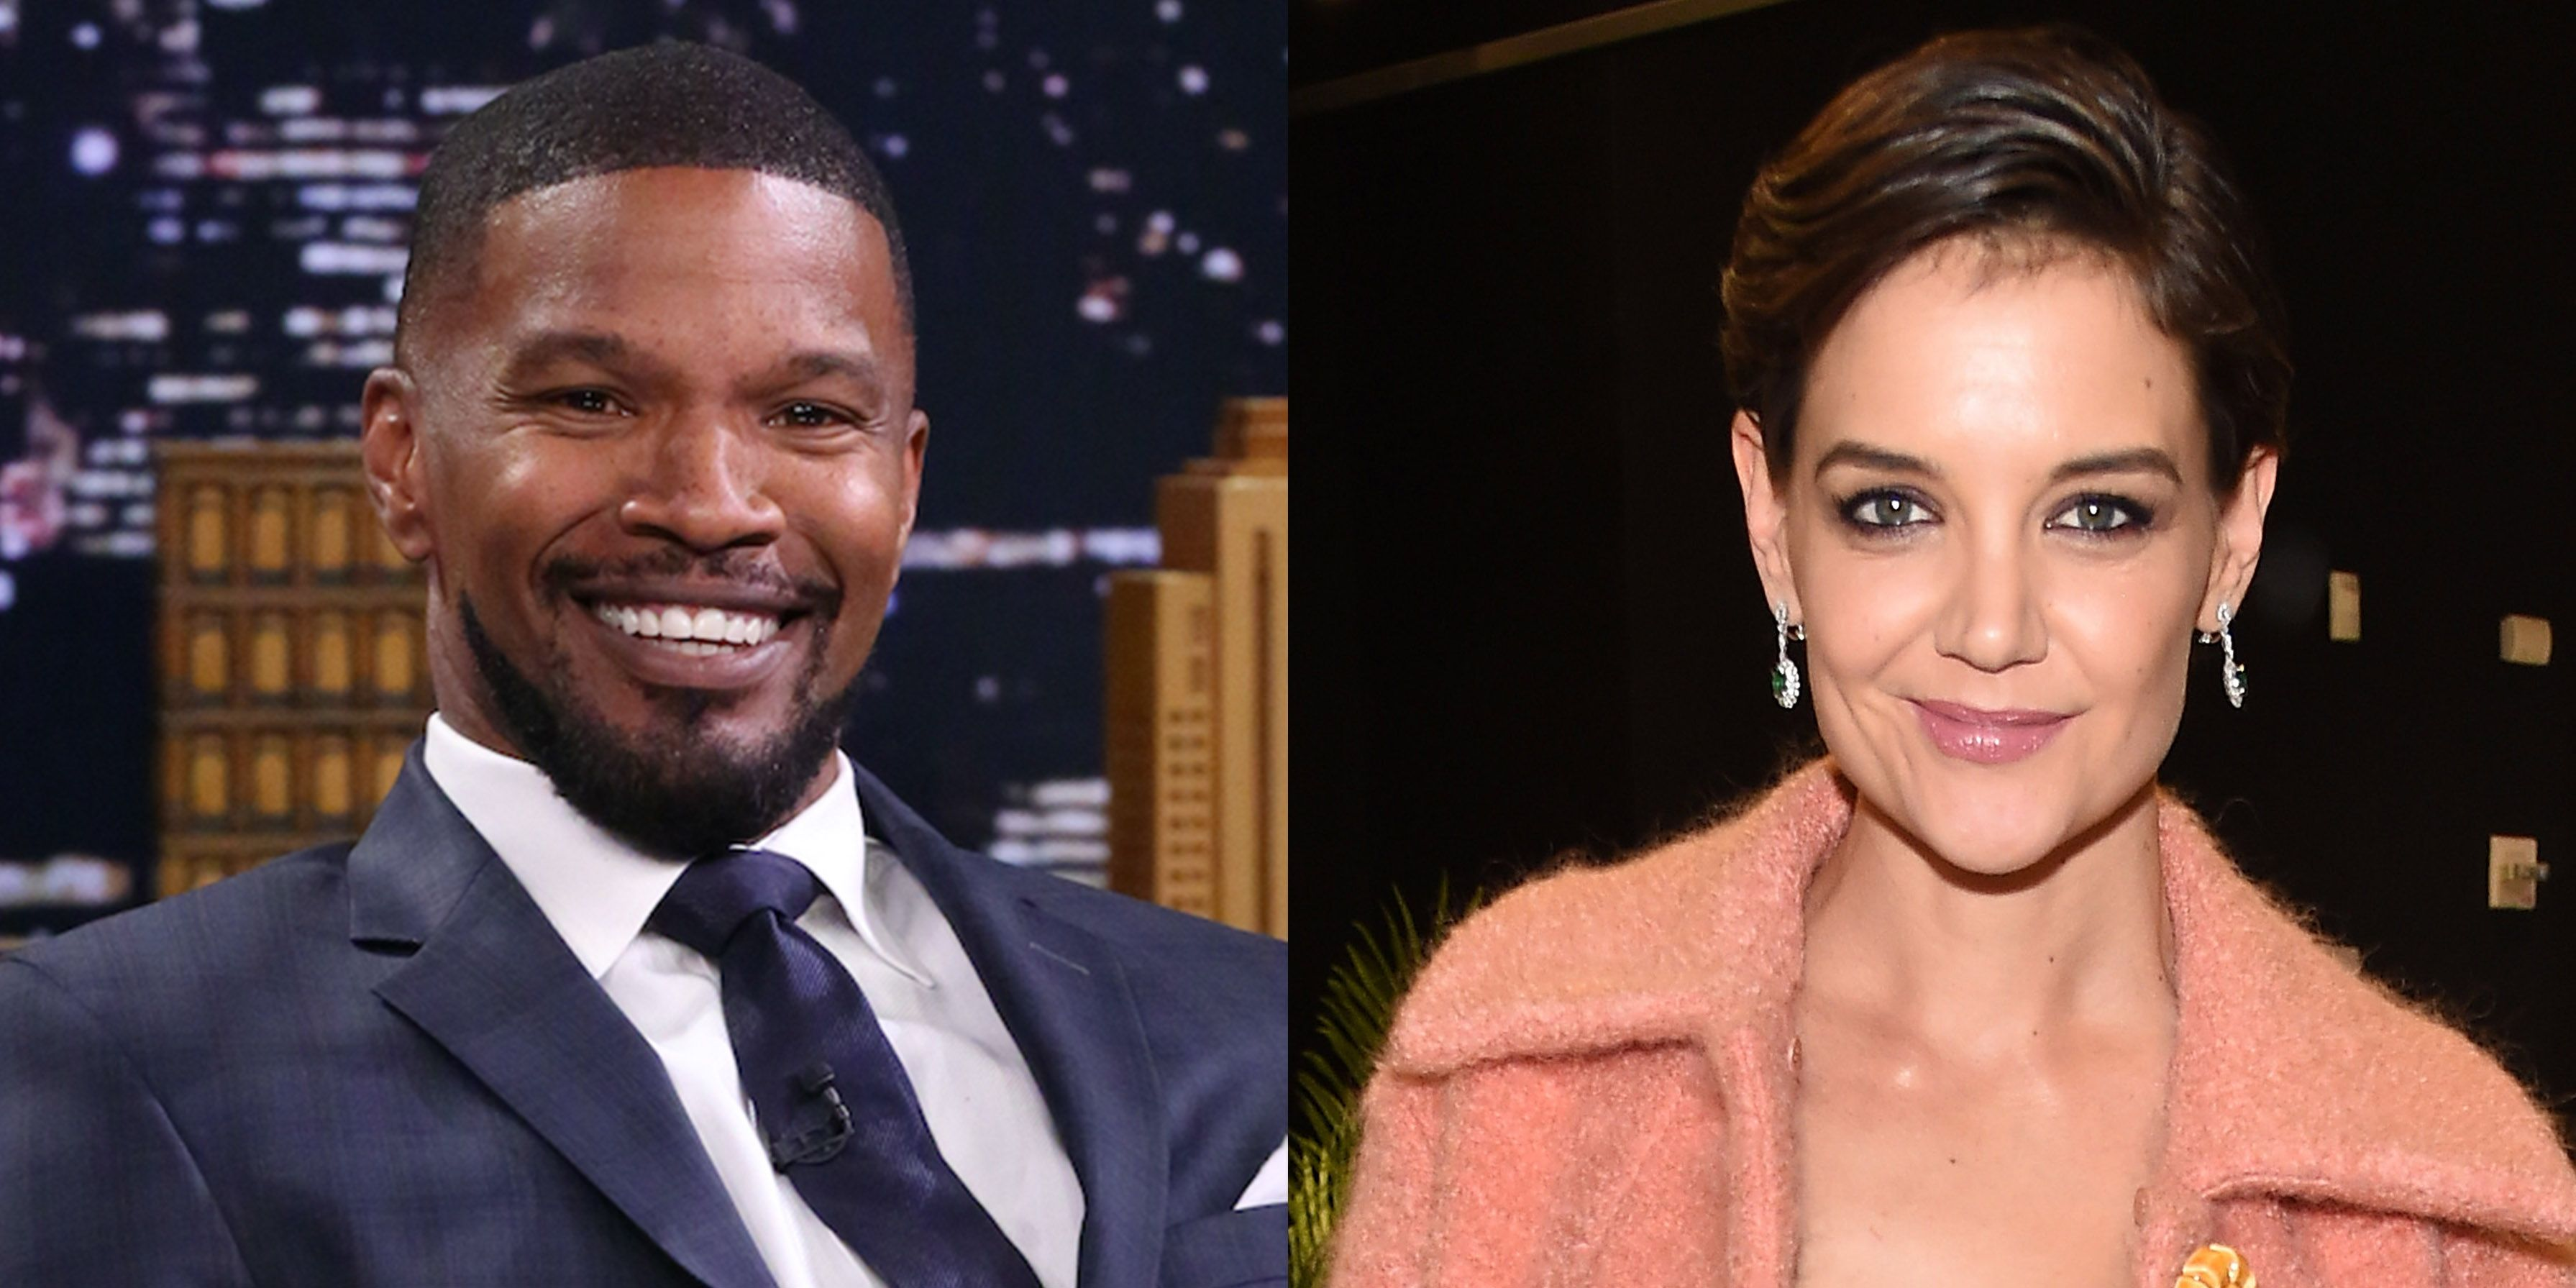 Jamie Foxx and Katie Holmes have been quietly dating since 2013